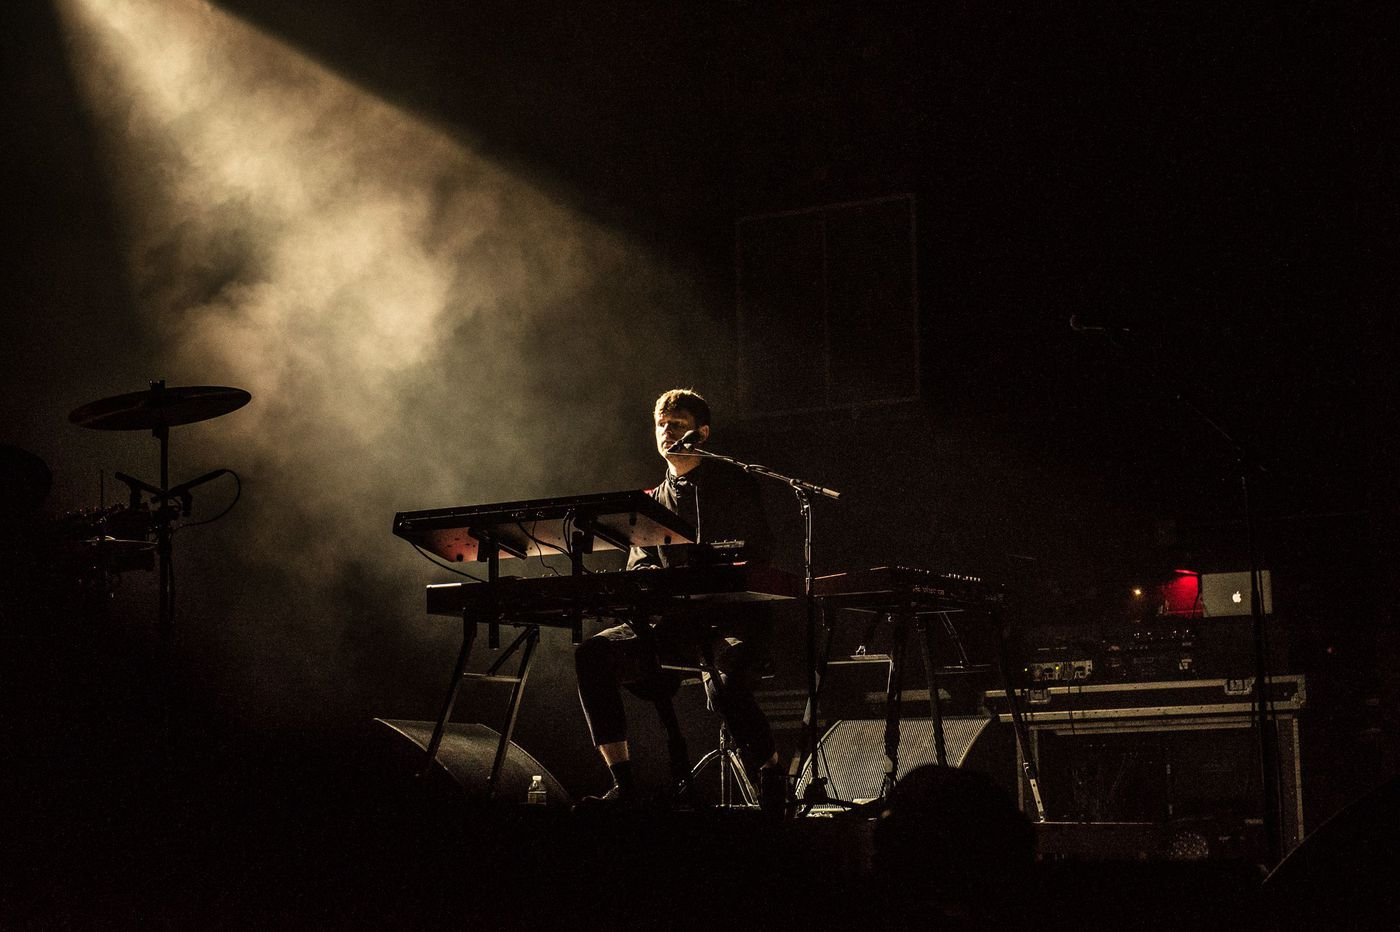 James Blake brings light to darkness during Philadelphia show